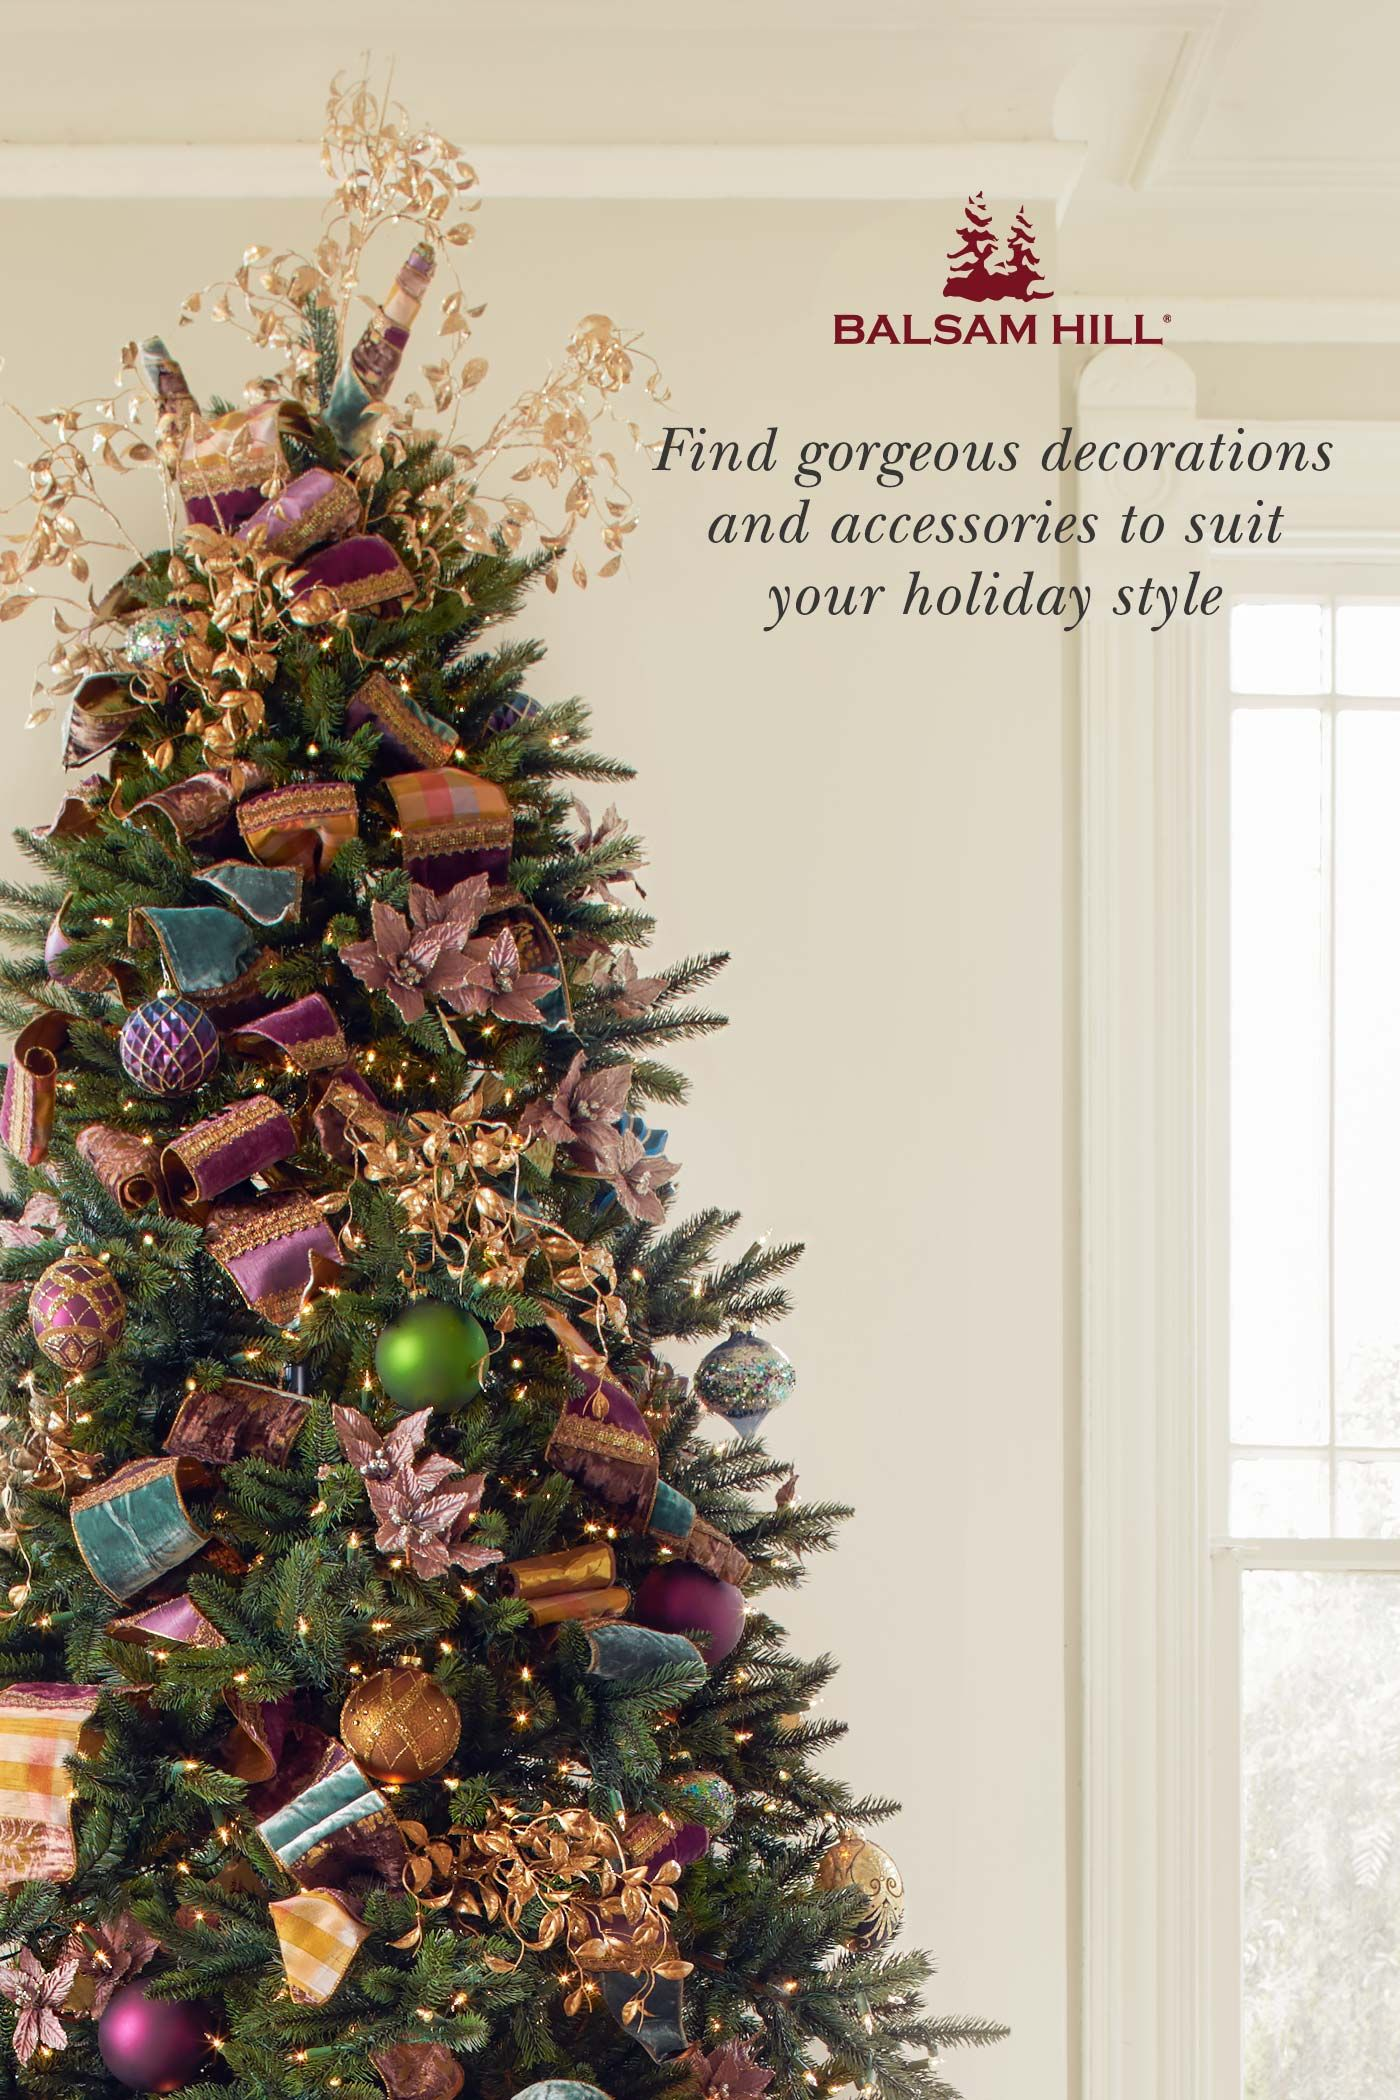 Congratulations To Ms Brenda For Winning Our Tree Donated By Pmg Marketing Llc At Christmas Vil Christmas Tree Decorations Christmas Village Tree Decorations